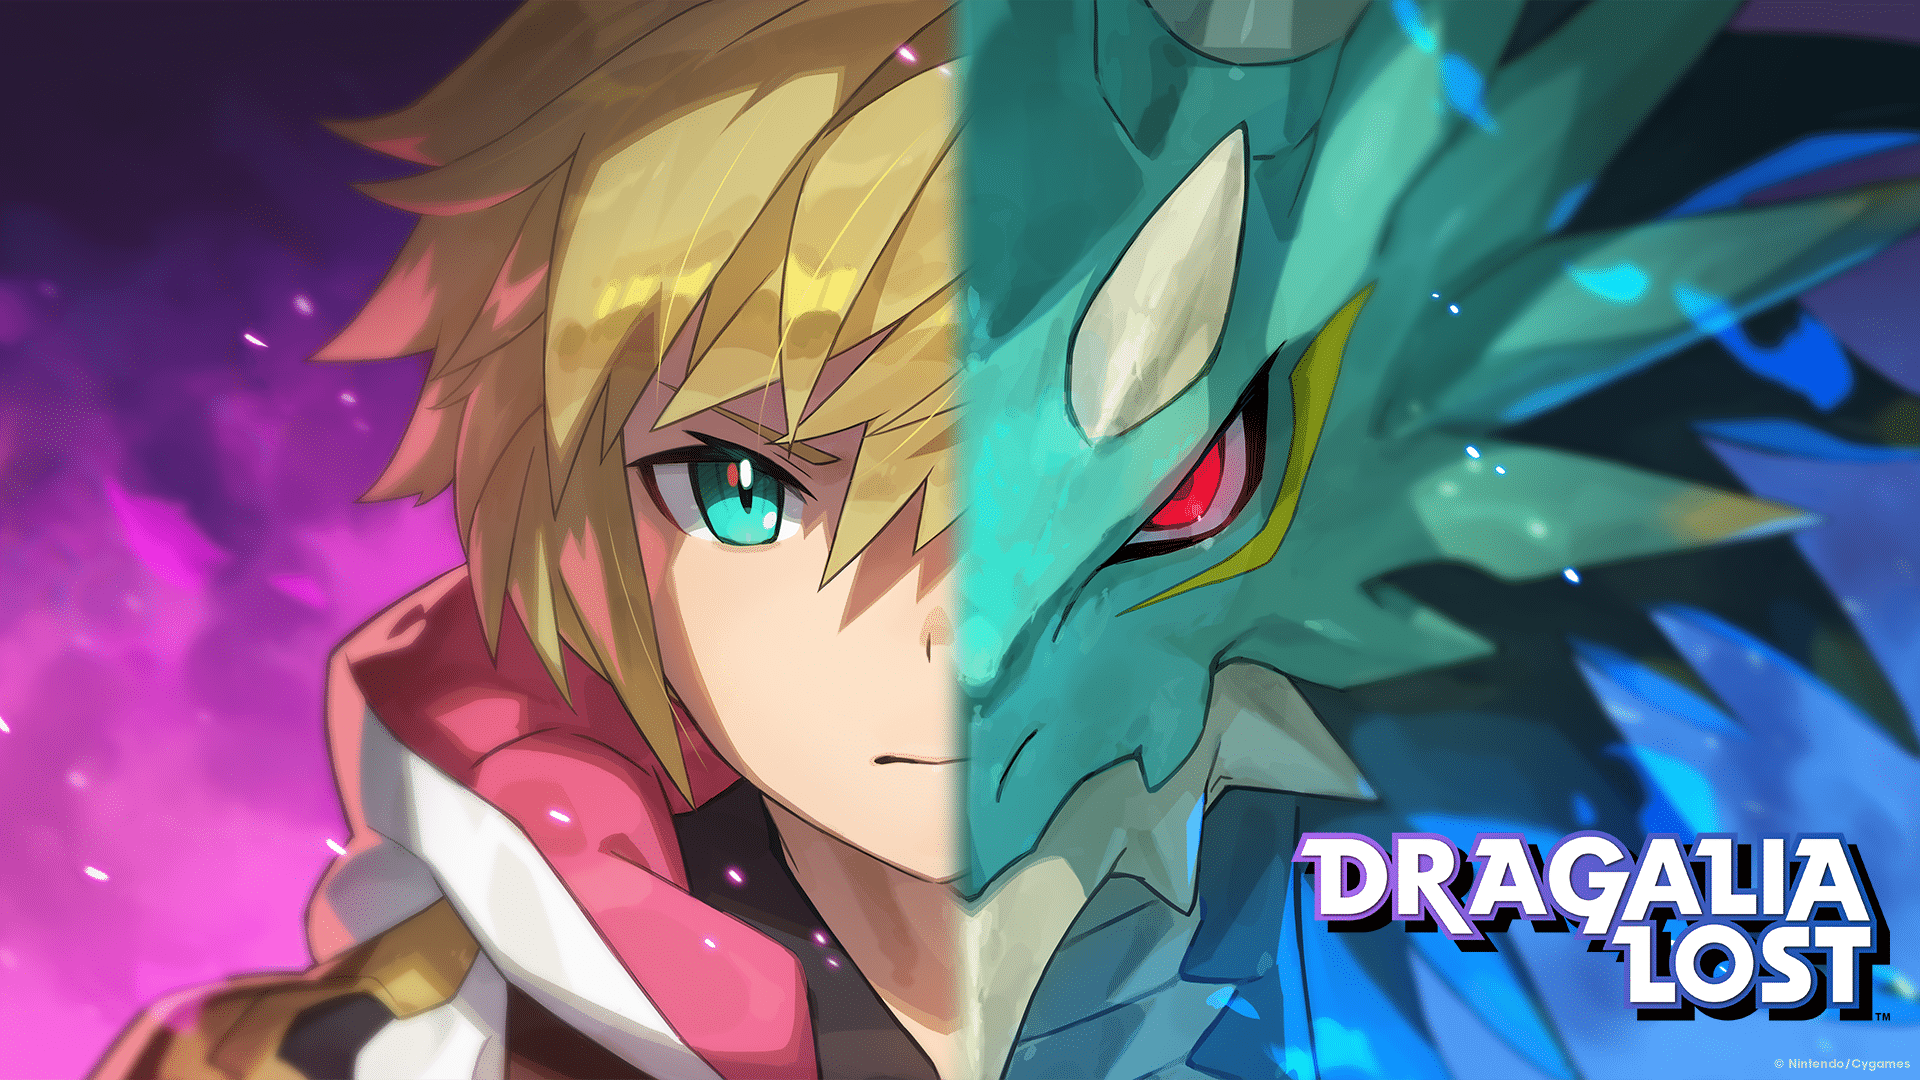 Dragalia Lost trails behind